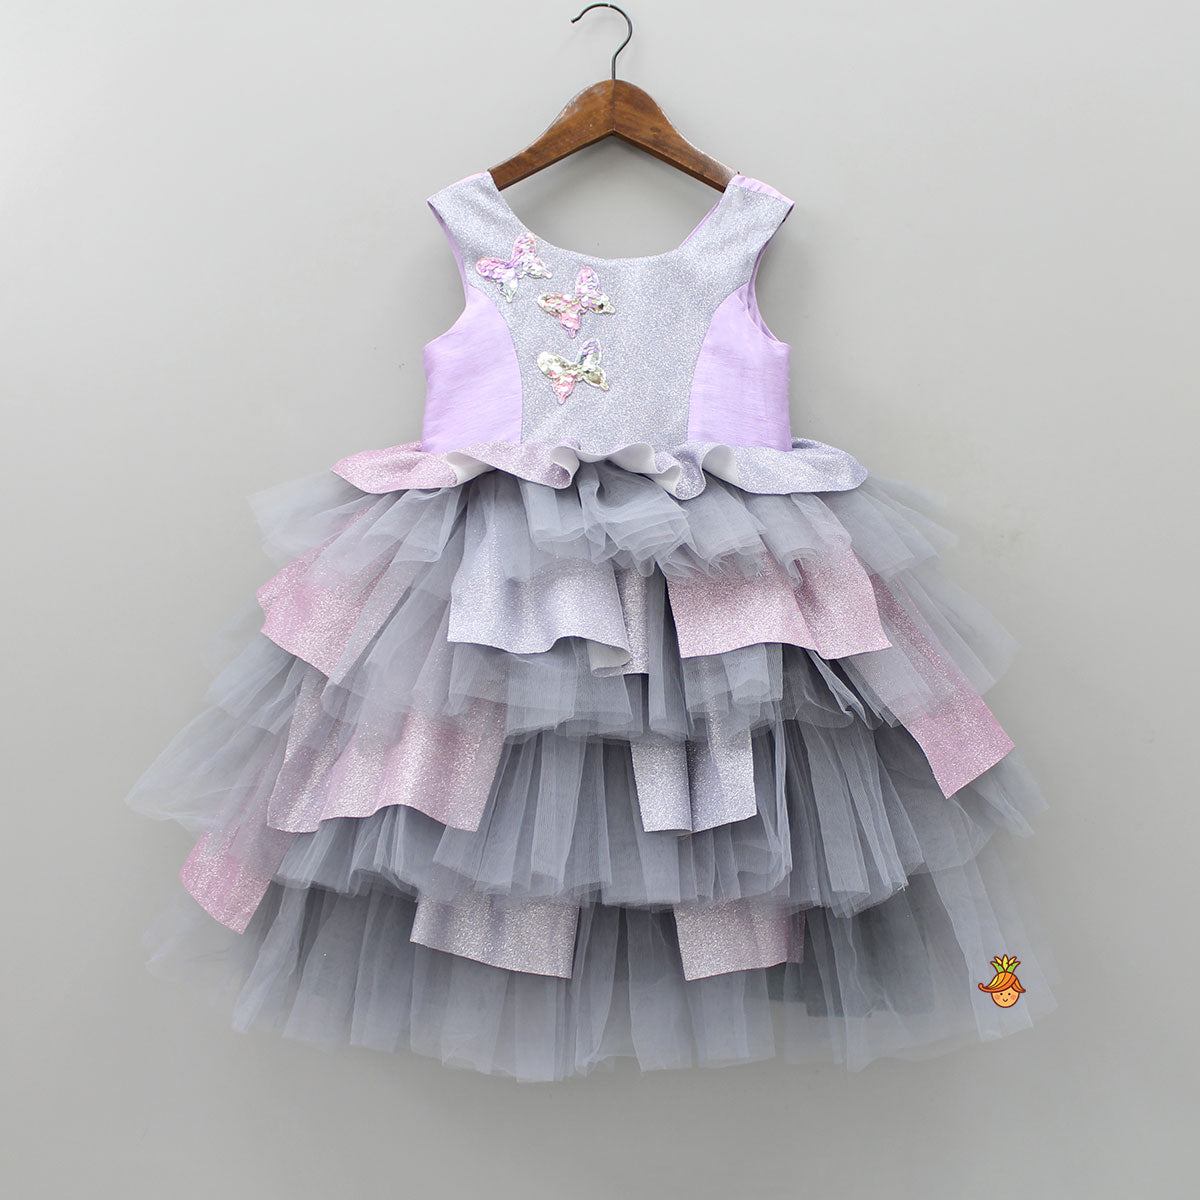 Pre Order: Purple and Grey Shimmer Party Dress